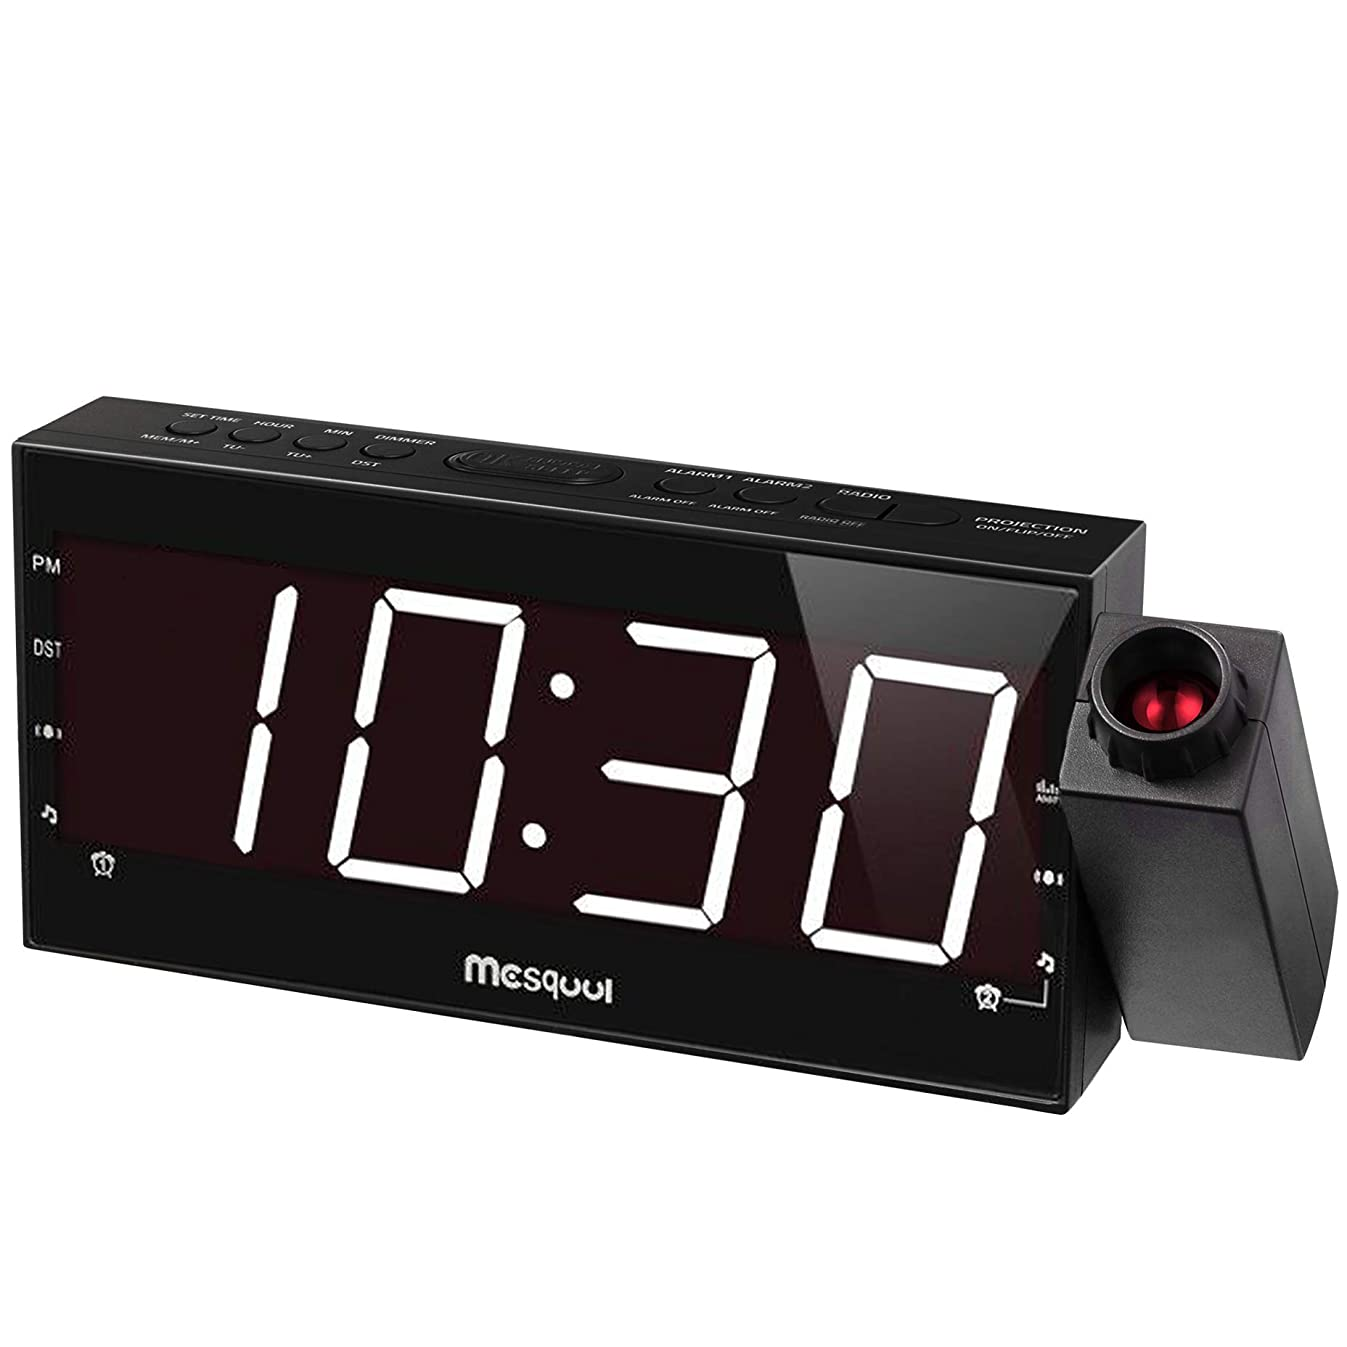 Mesqool Projection Alarm Clock for Bedroom - AM FM Radio & Sleep Timer, 180° Projector, 7